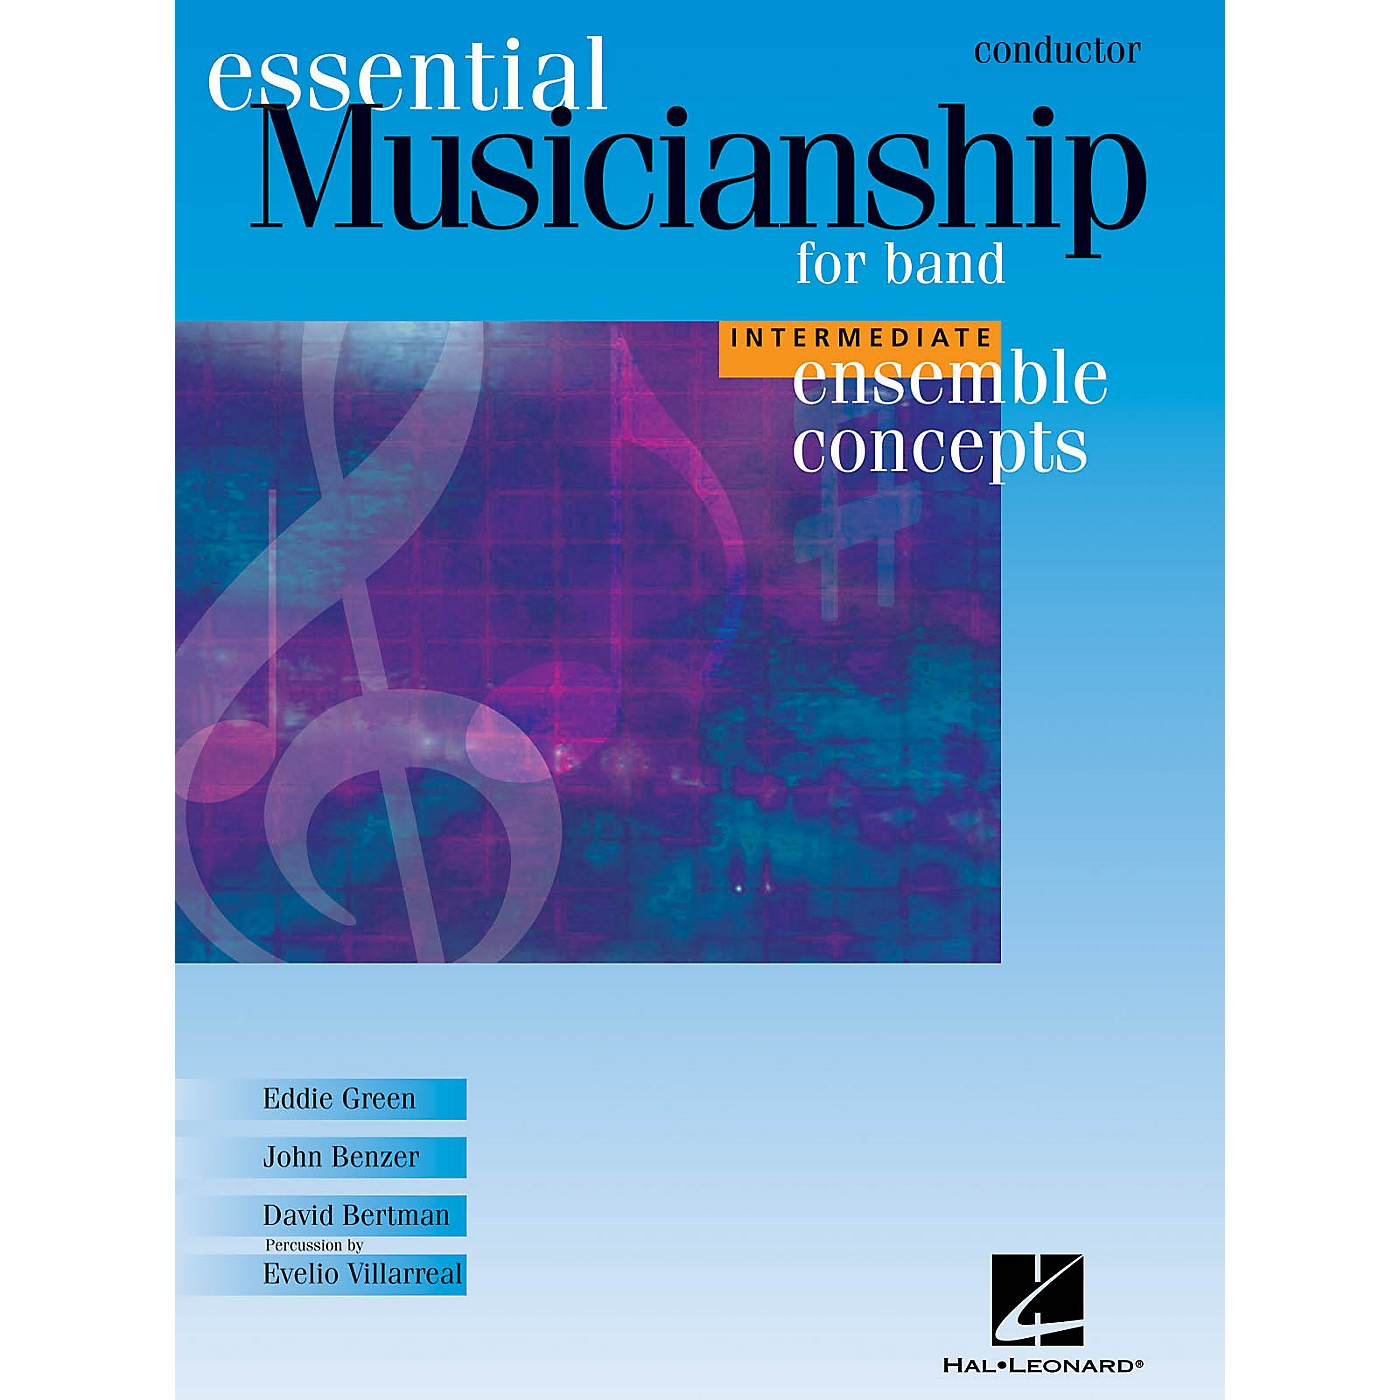 Hal Leonard Essential Musicianship for Band - Ensemble Concepts (Intermediate Level - Conductor) Concert Band thumbnail